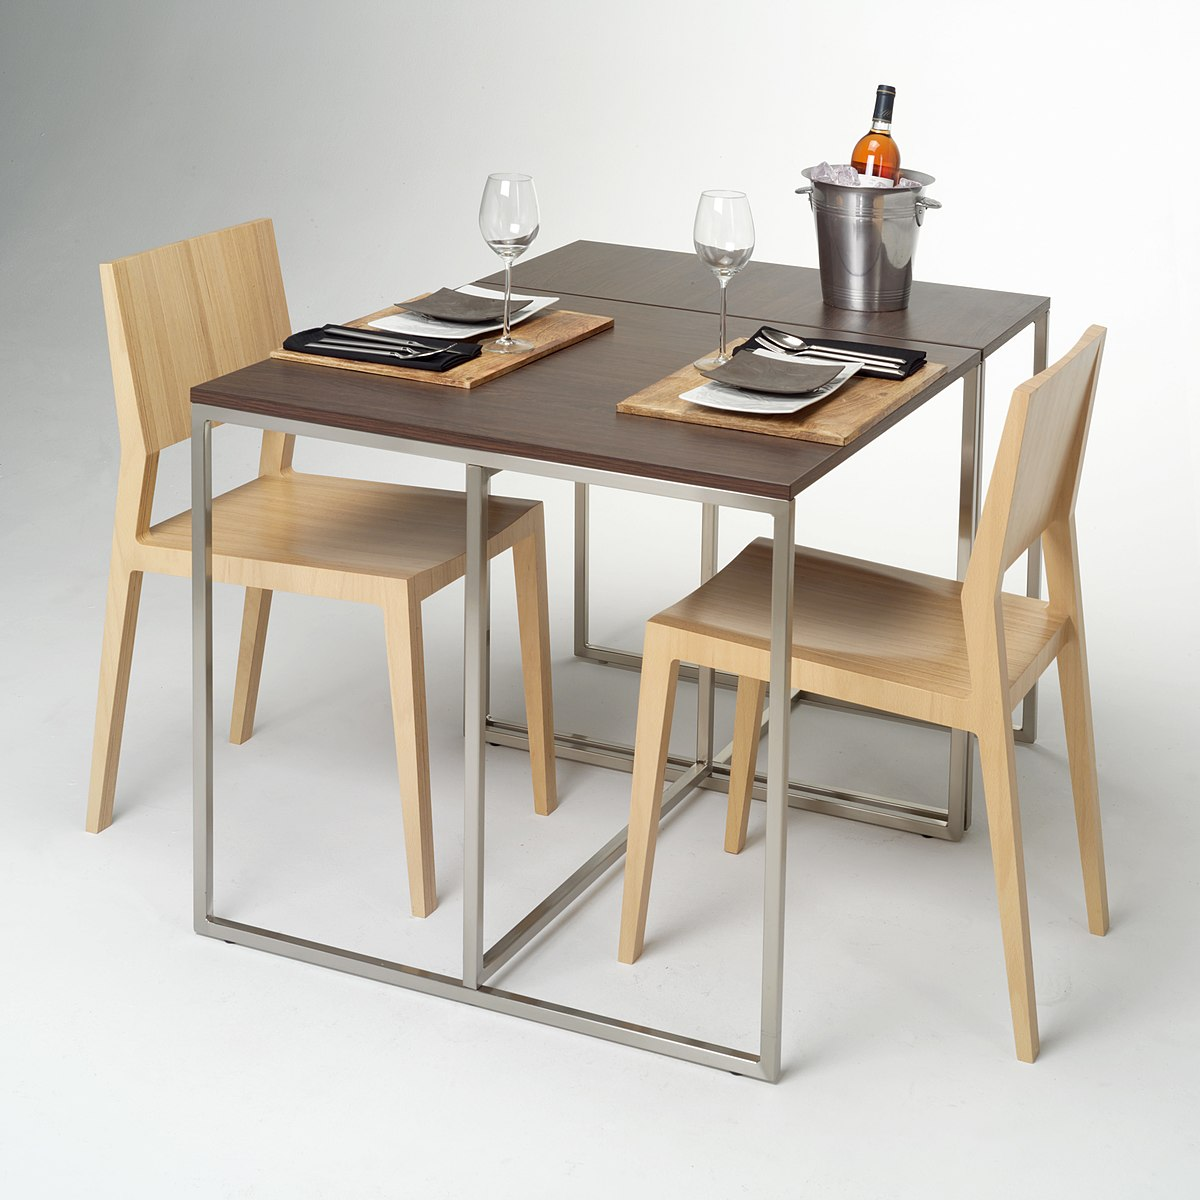 2 Person Dining Set Furniture Wikipedia